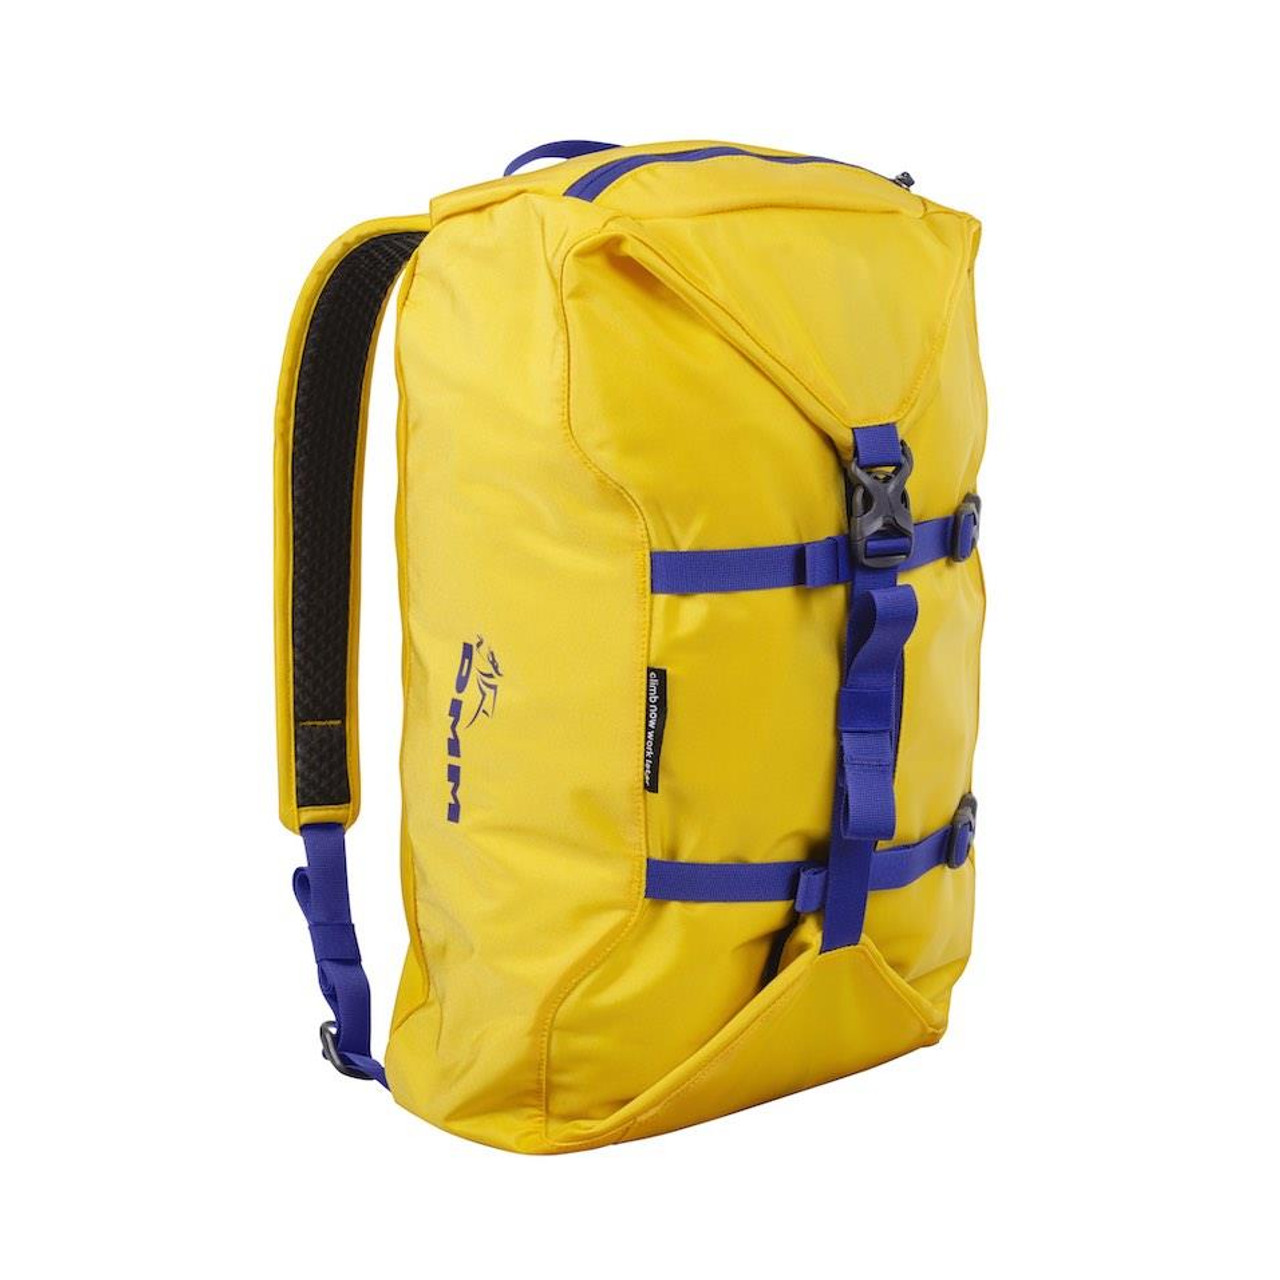 DMM Classic Rope Bag - Yellow